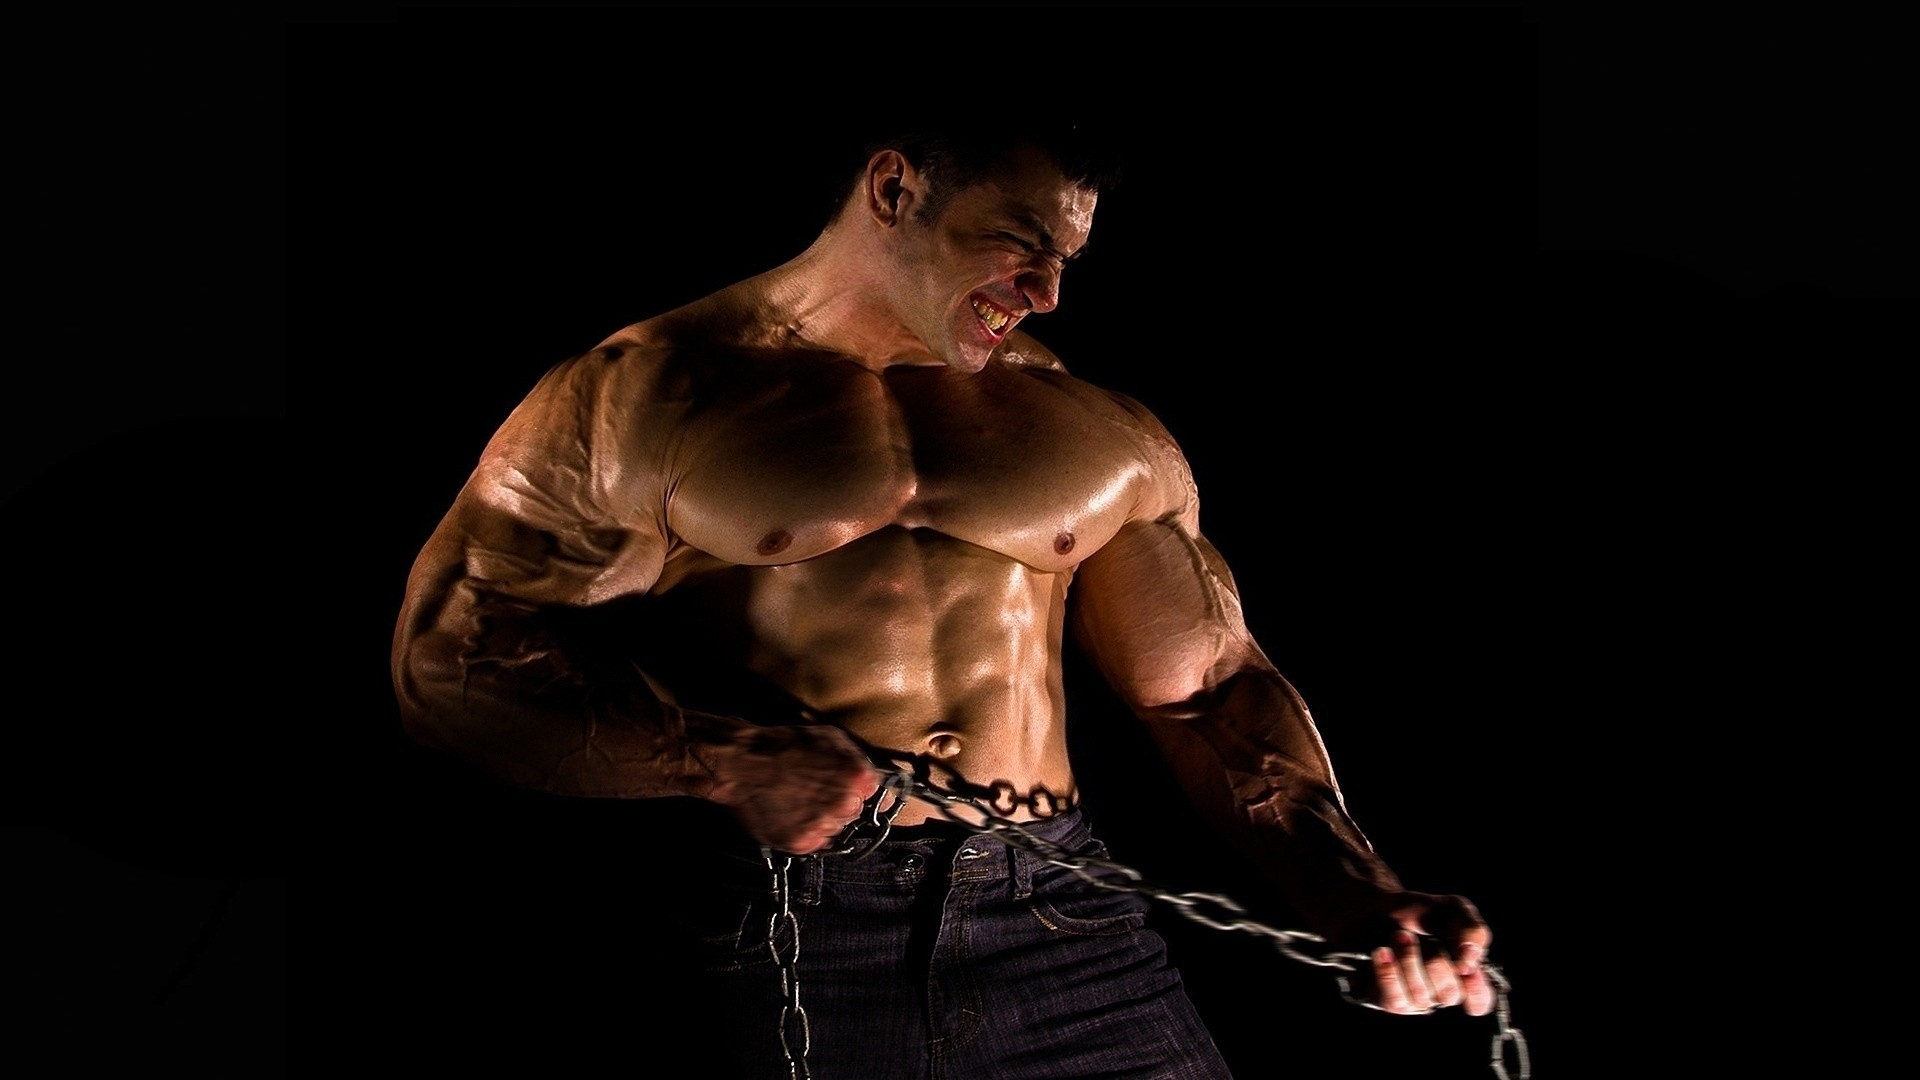 Res: 1920x1080, BODYBUILDER sports chain fitness muscle men males sexy handsome hunk  wallpaper |  | 32257 | WallpaperUP